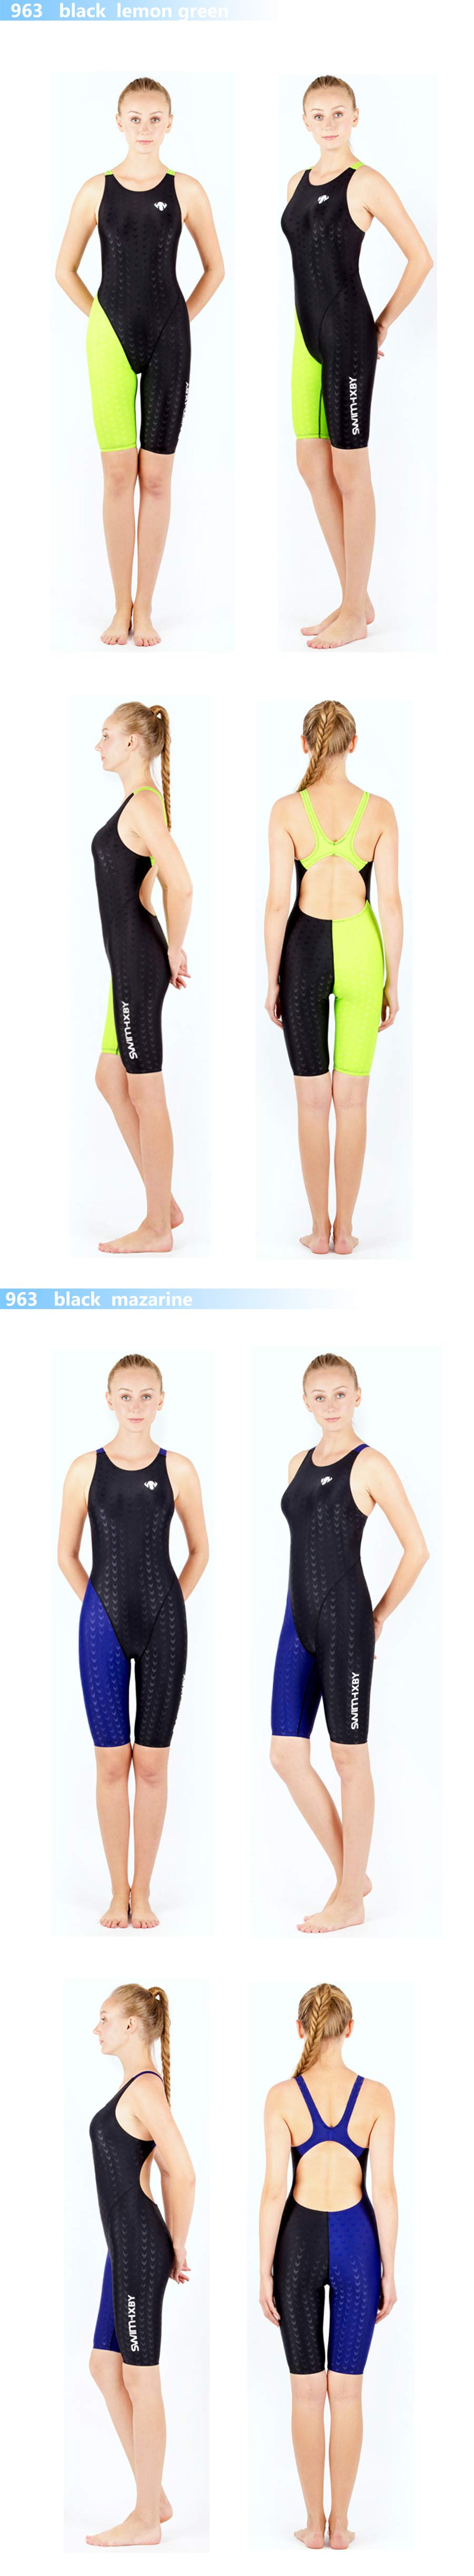 66e520b7fcd67 ... HXBY swimwear girls racing swimsuits sharkskin professional swimsuits  knee one piece competition swim suits one piece